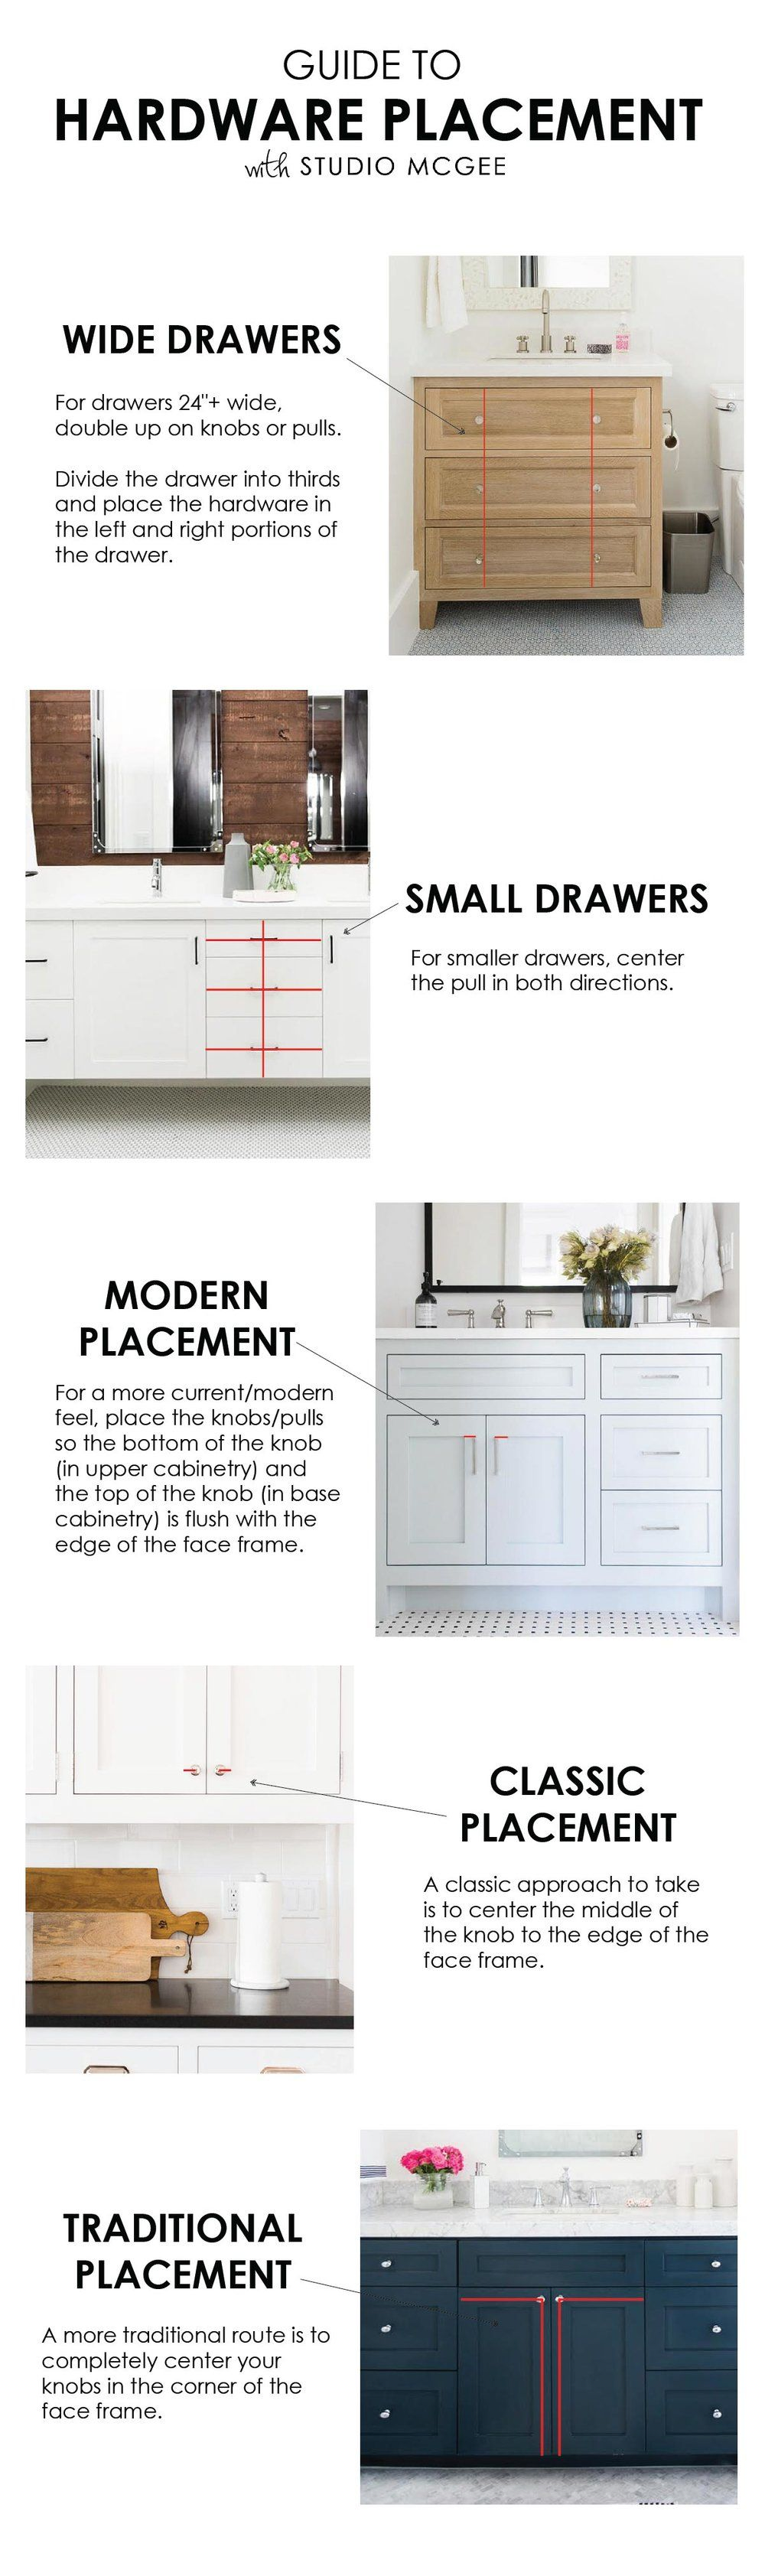 Hardware Placement Guide | Pinterest | Hardware, Kitchens and House